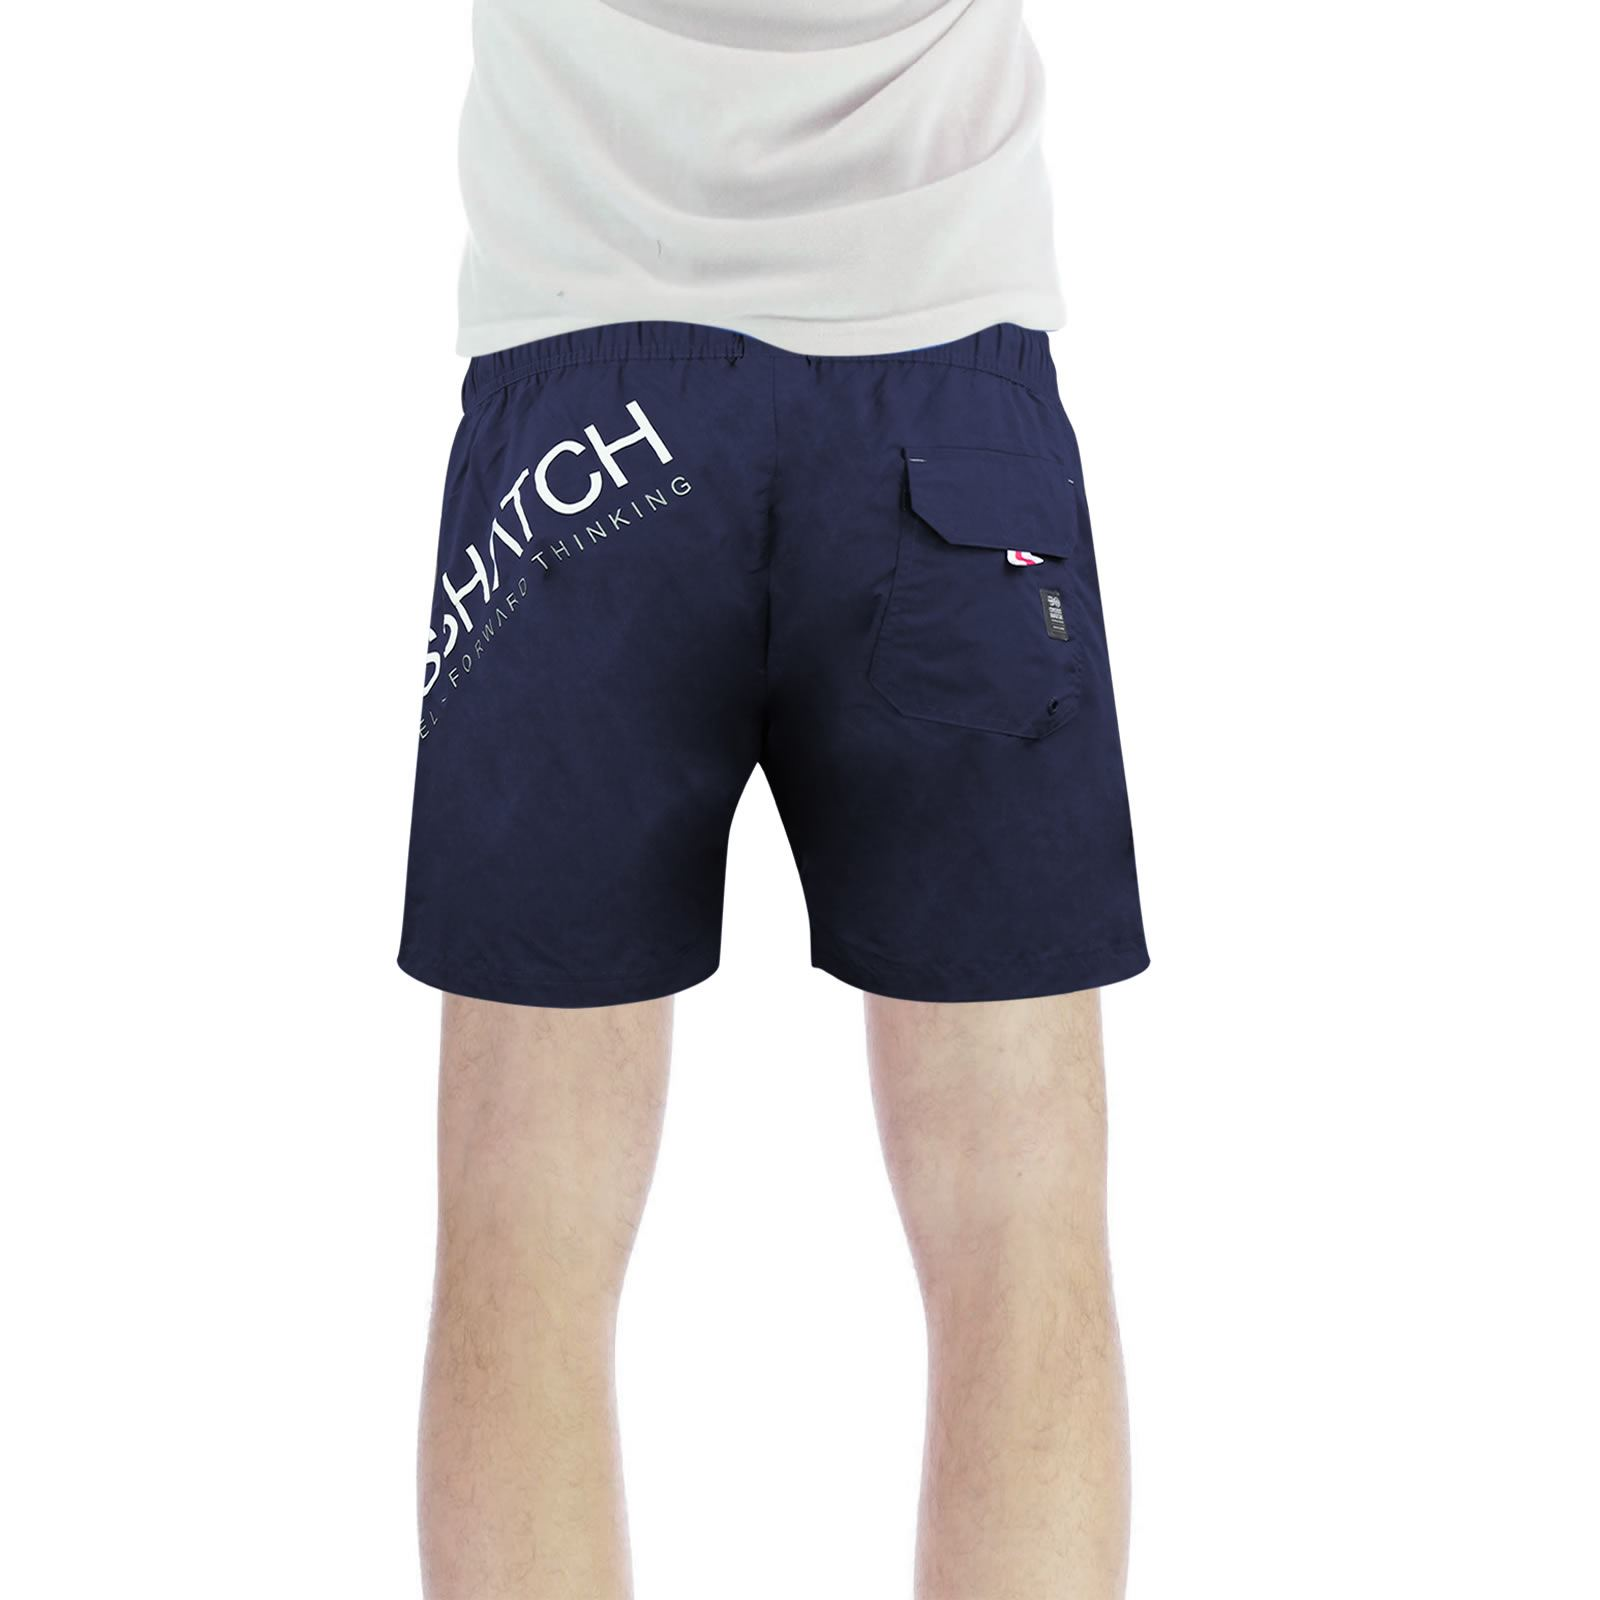 Crosshatch-makins-Homme-Shorts-De-Bain-Casual-Maille-Double-Ete-Natation-Trunks miniature 3